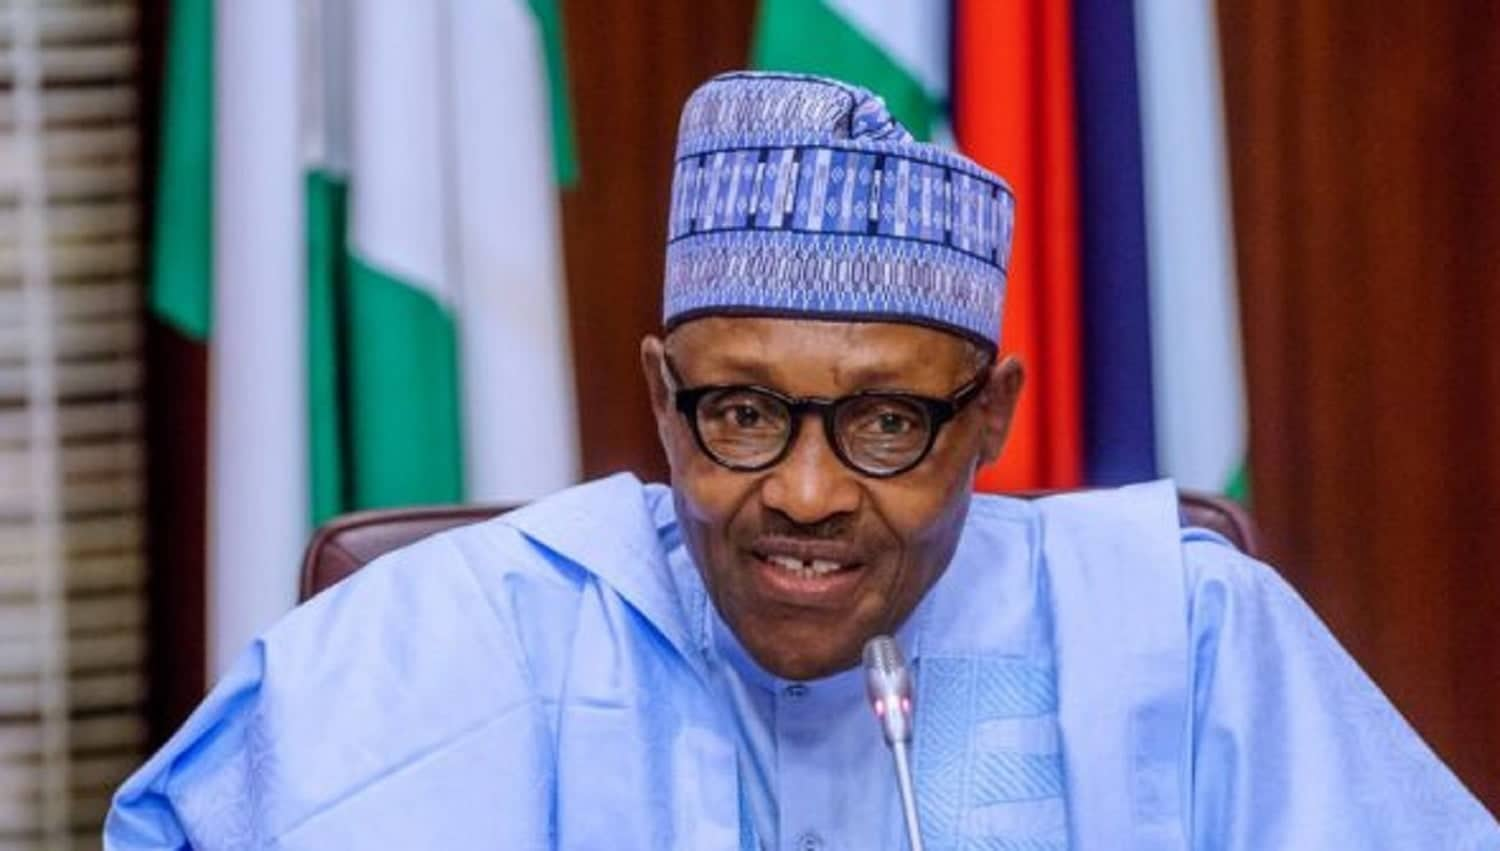 President Muhammadu Buhari Has Acknowledged, With Deep Appreciation, The Kind Gesture Of Captain Of Industries, Corporate Entities, Missionaries, Musical Artistes And Individuals Who Have Consisten